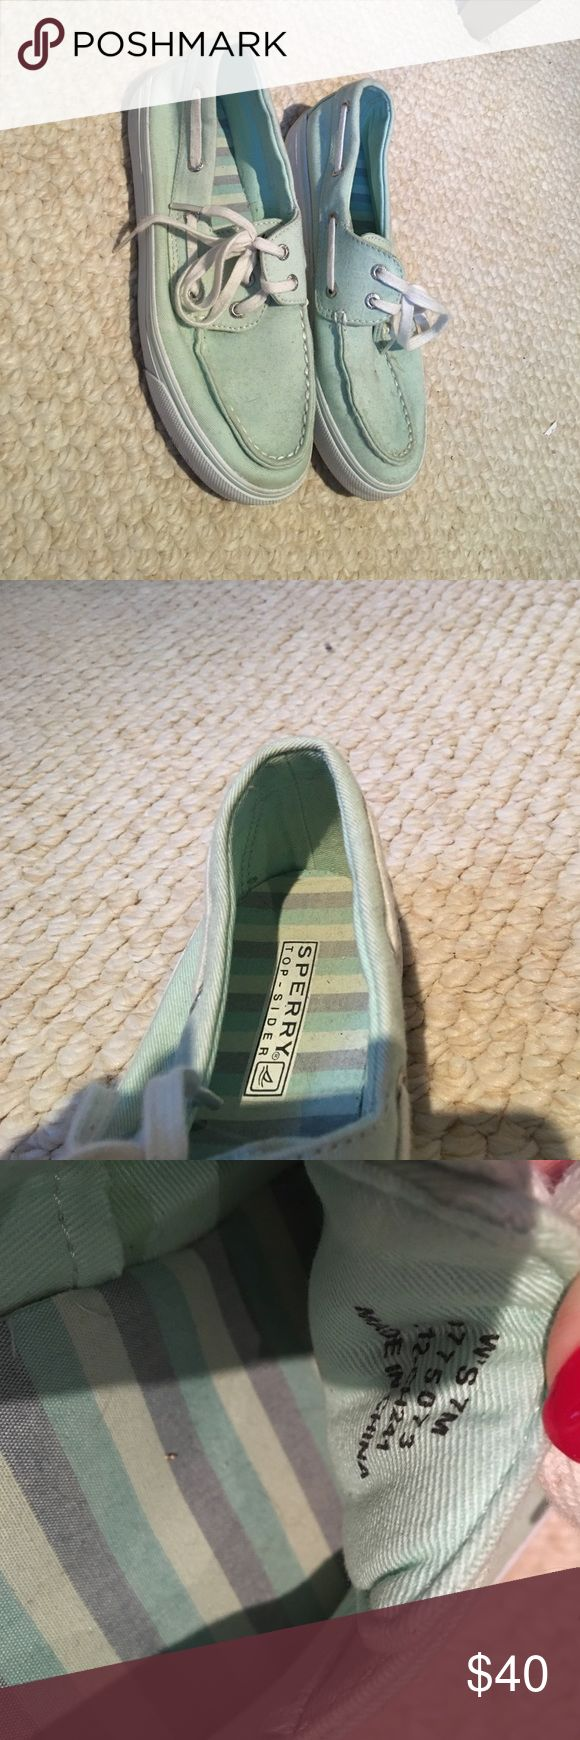 Shoes Mint green Sperrys. Thats not dirt on them just dust from being in a box! Lol they'll clean up nice Sperry Shoes Flats & Loafers